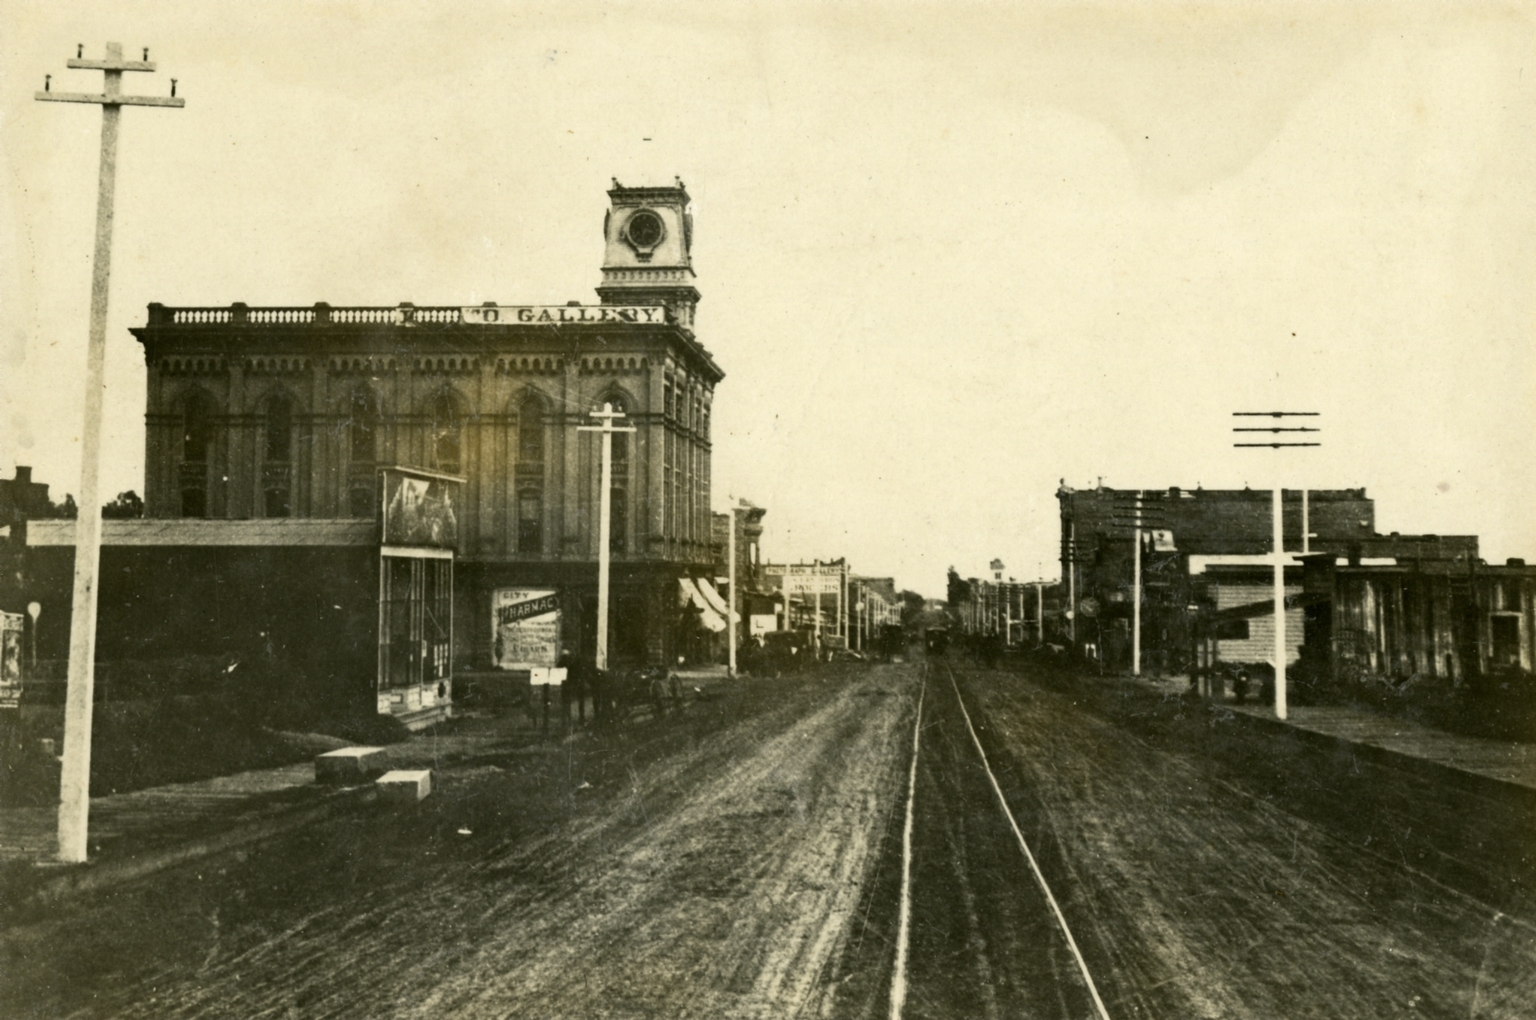 Looking Down State Street at Carrillo Street